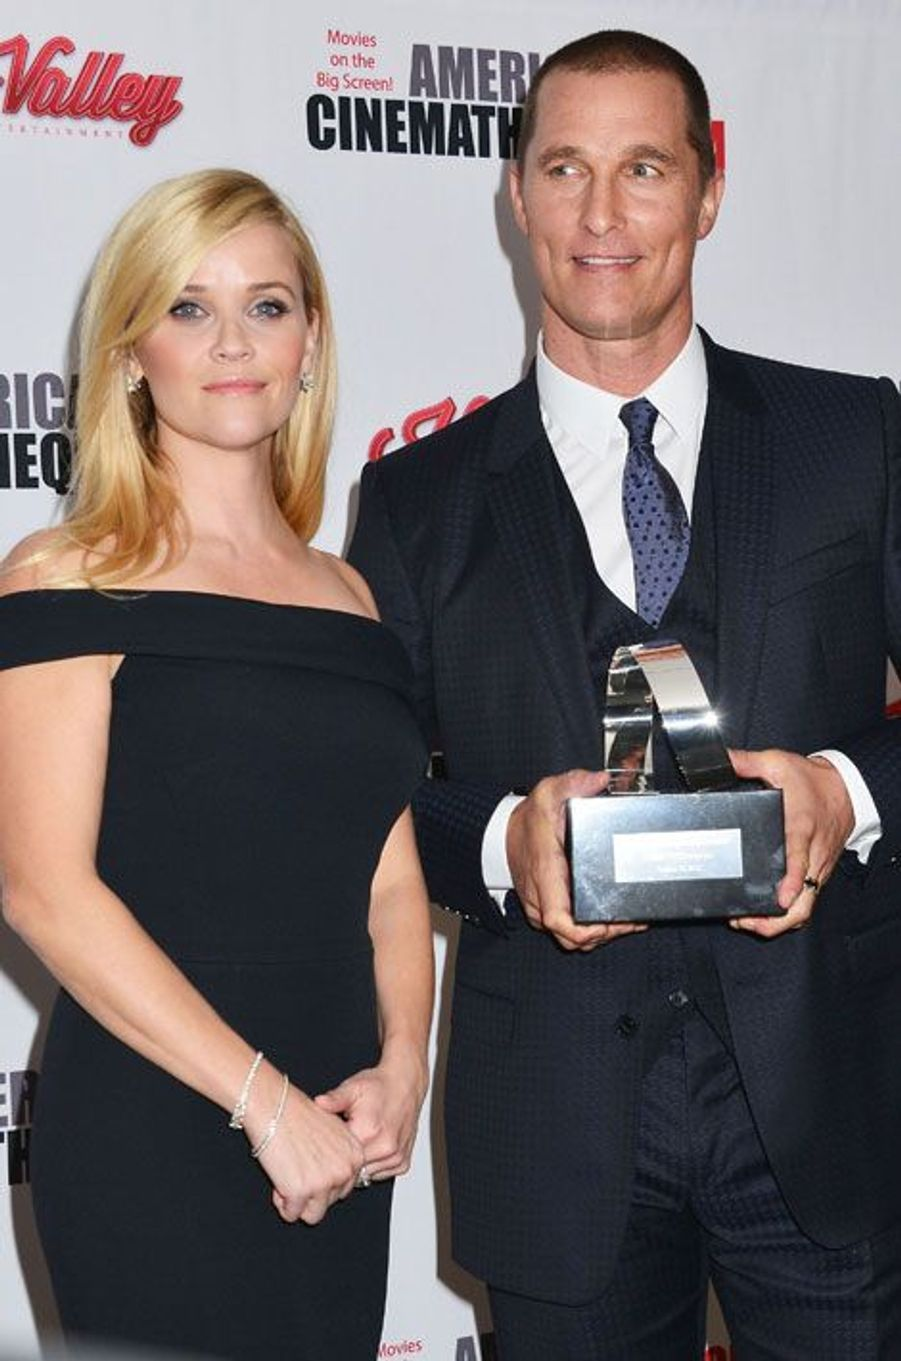 Reese Witherspoon et Matthew McConaughey